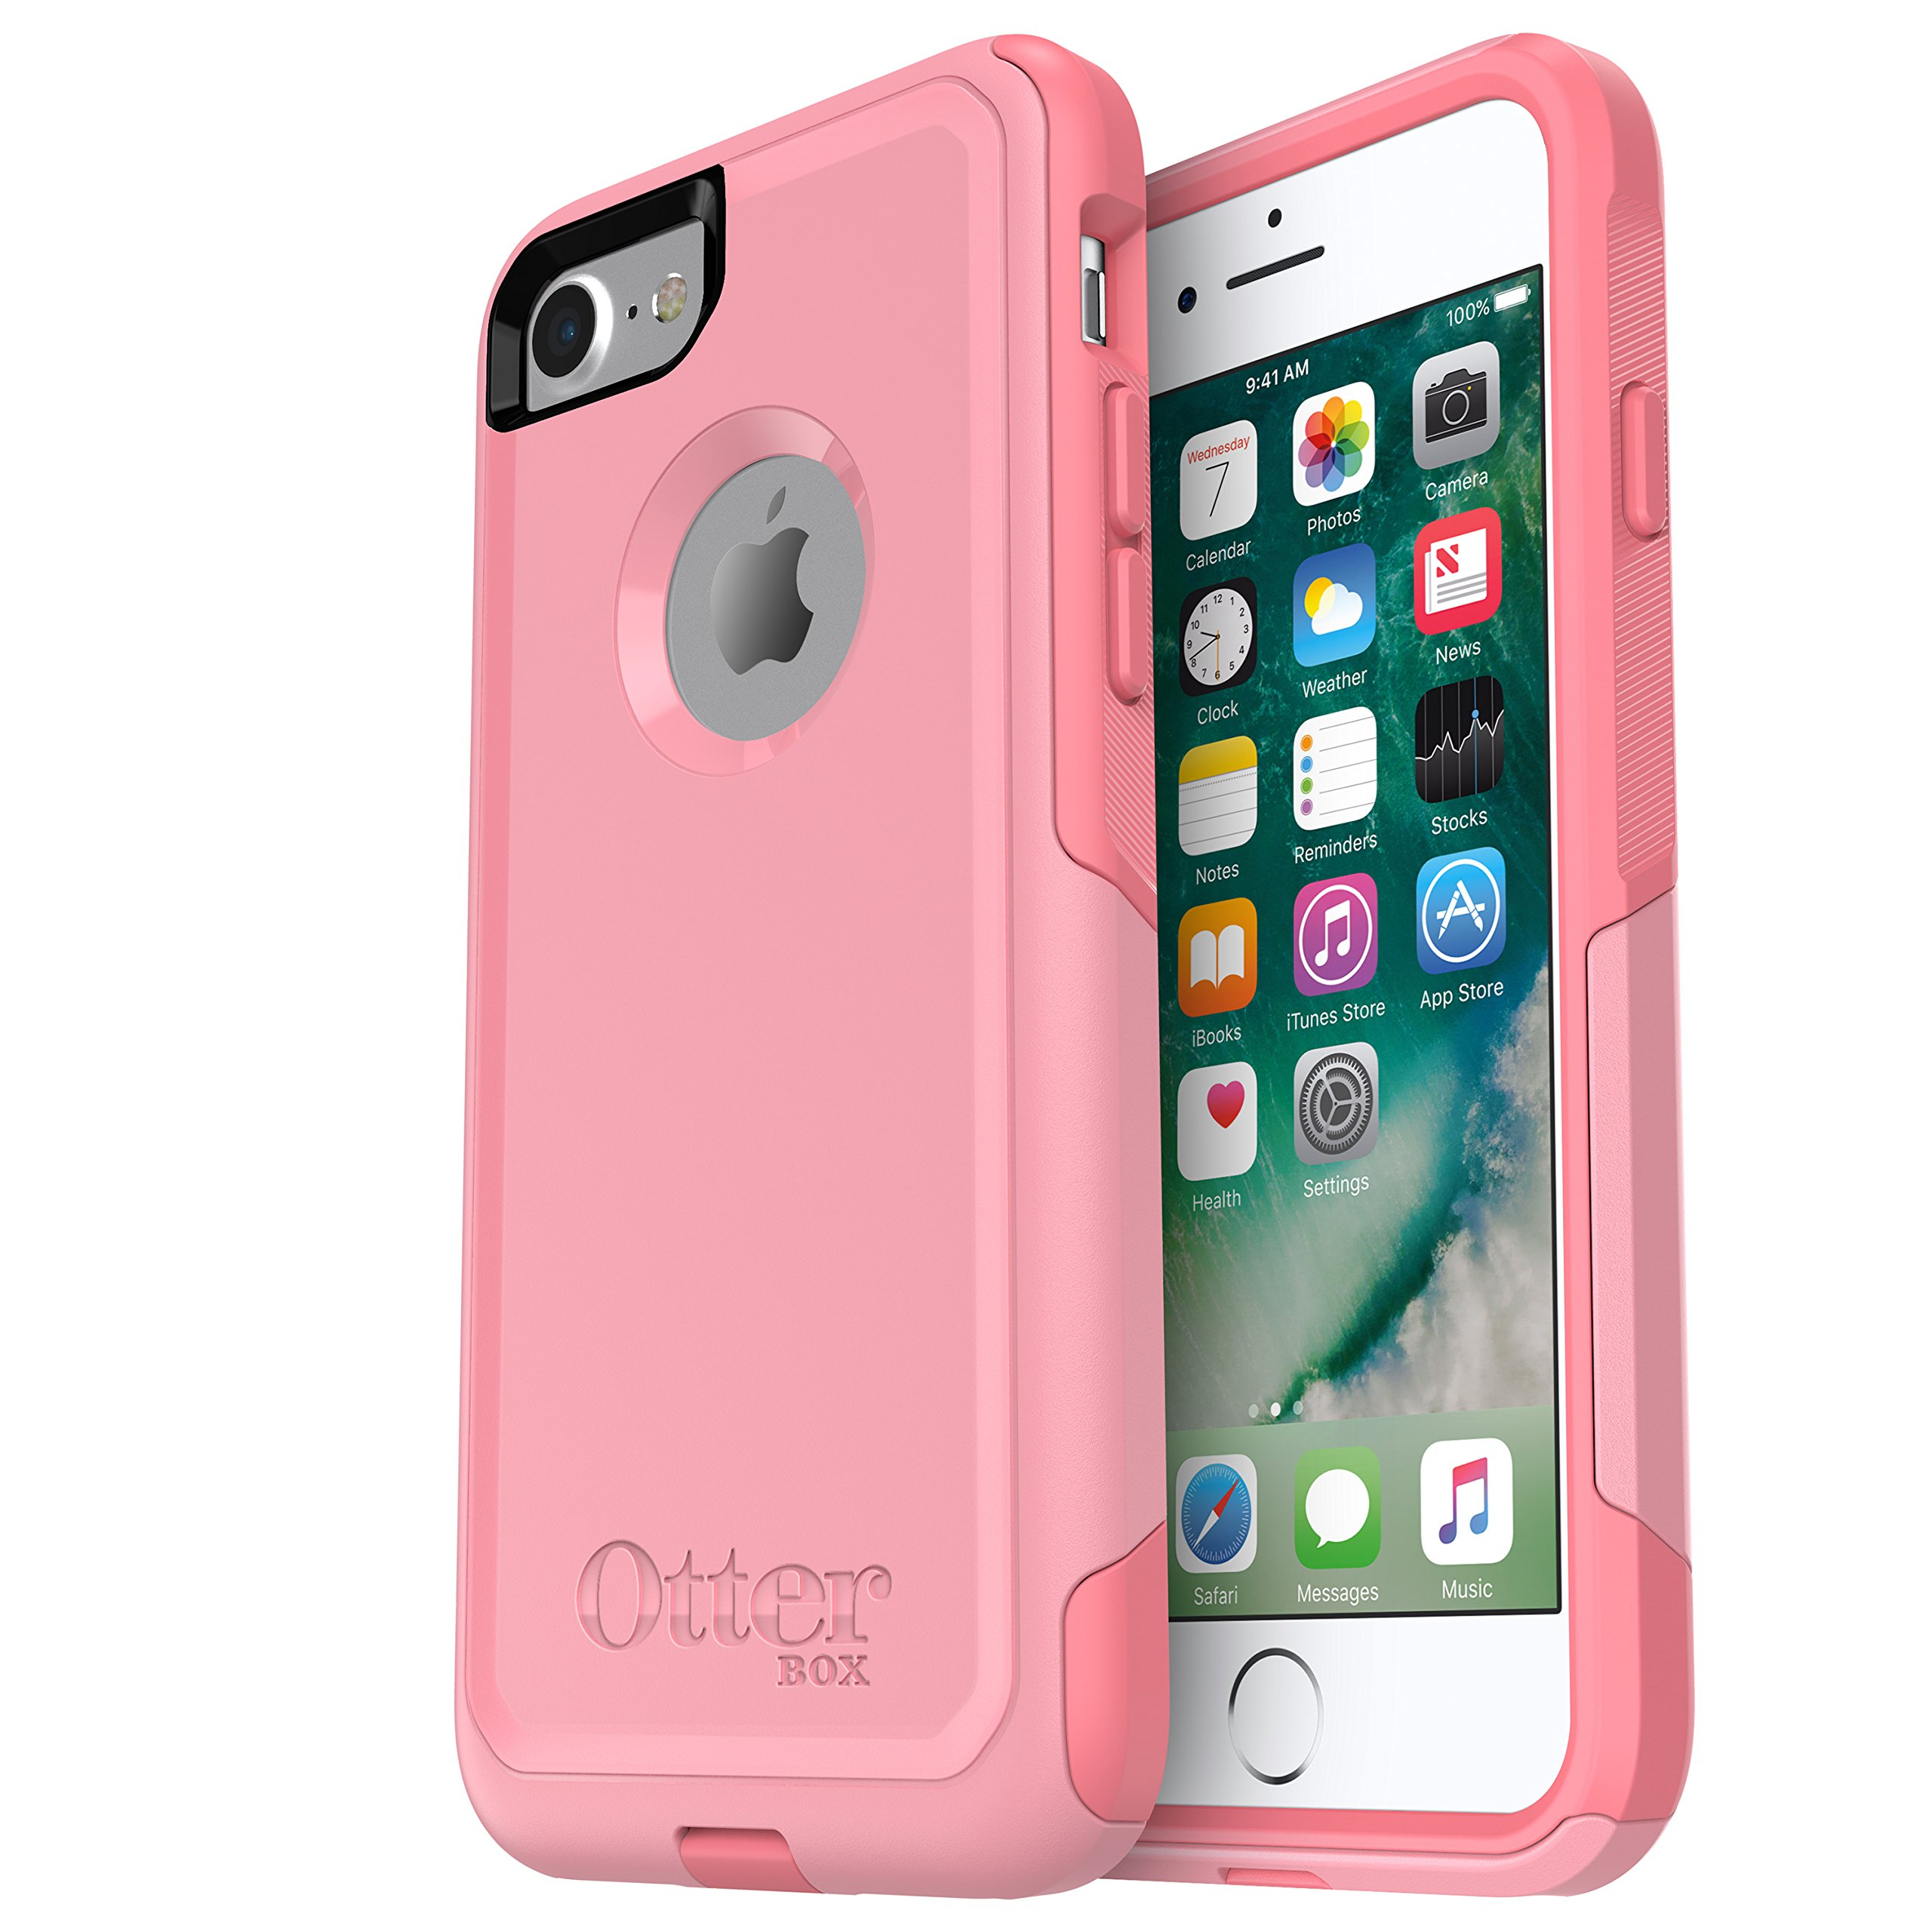 OtterBox (77-53899) COMMUTER SERIES Case for iPhone 8 & iPhone 7 (NOT Plus) - ROSMARINE WAY (ROSMARINE/PIPELINE PINK)